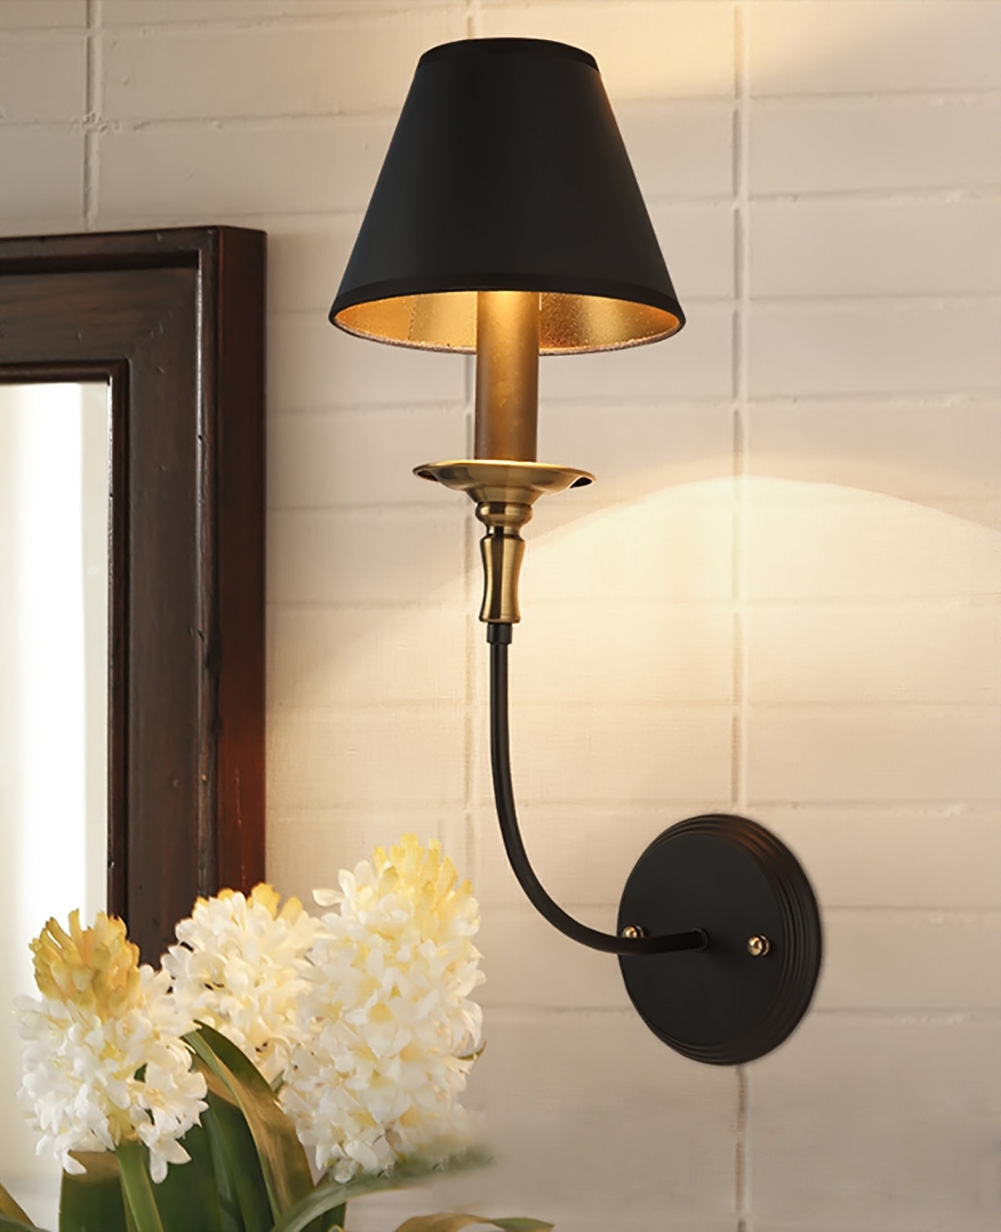 Wall Lamps Indoor : ?American Vintage Wall (?)_/? Lamp Lamp Indoor Lighting Bedside Lamps Iron Wall ? Lights Lights ...